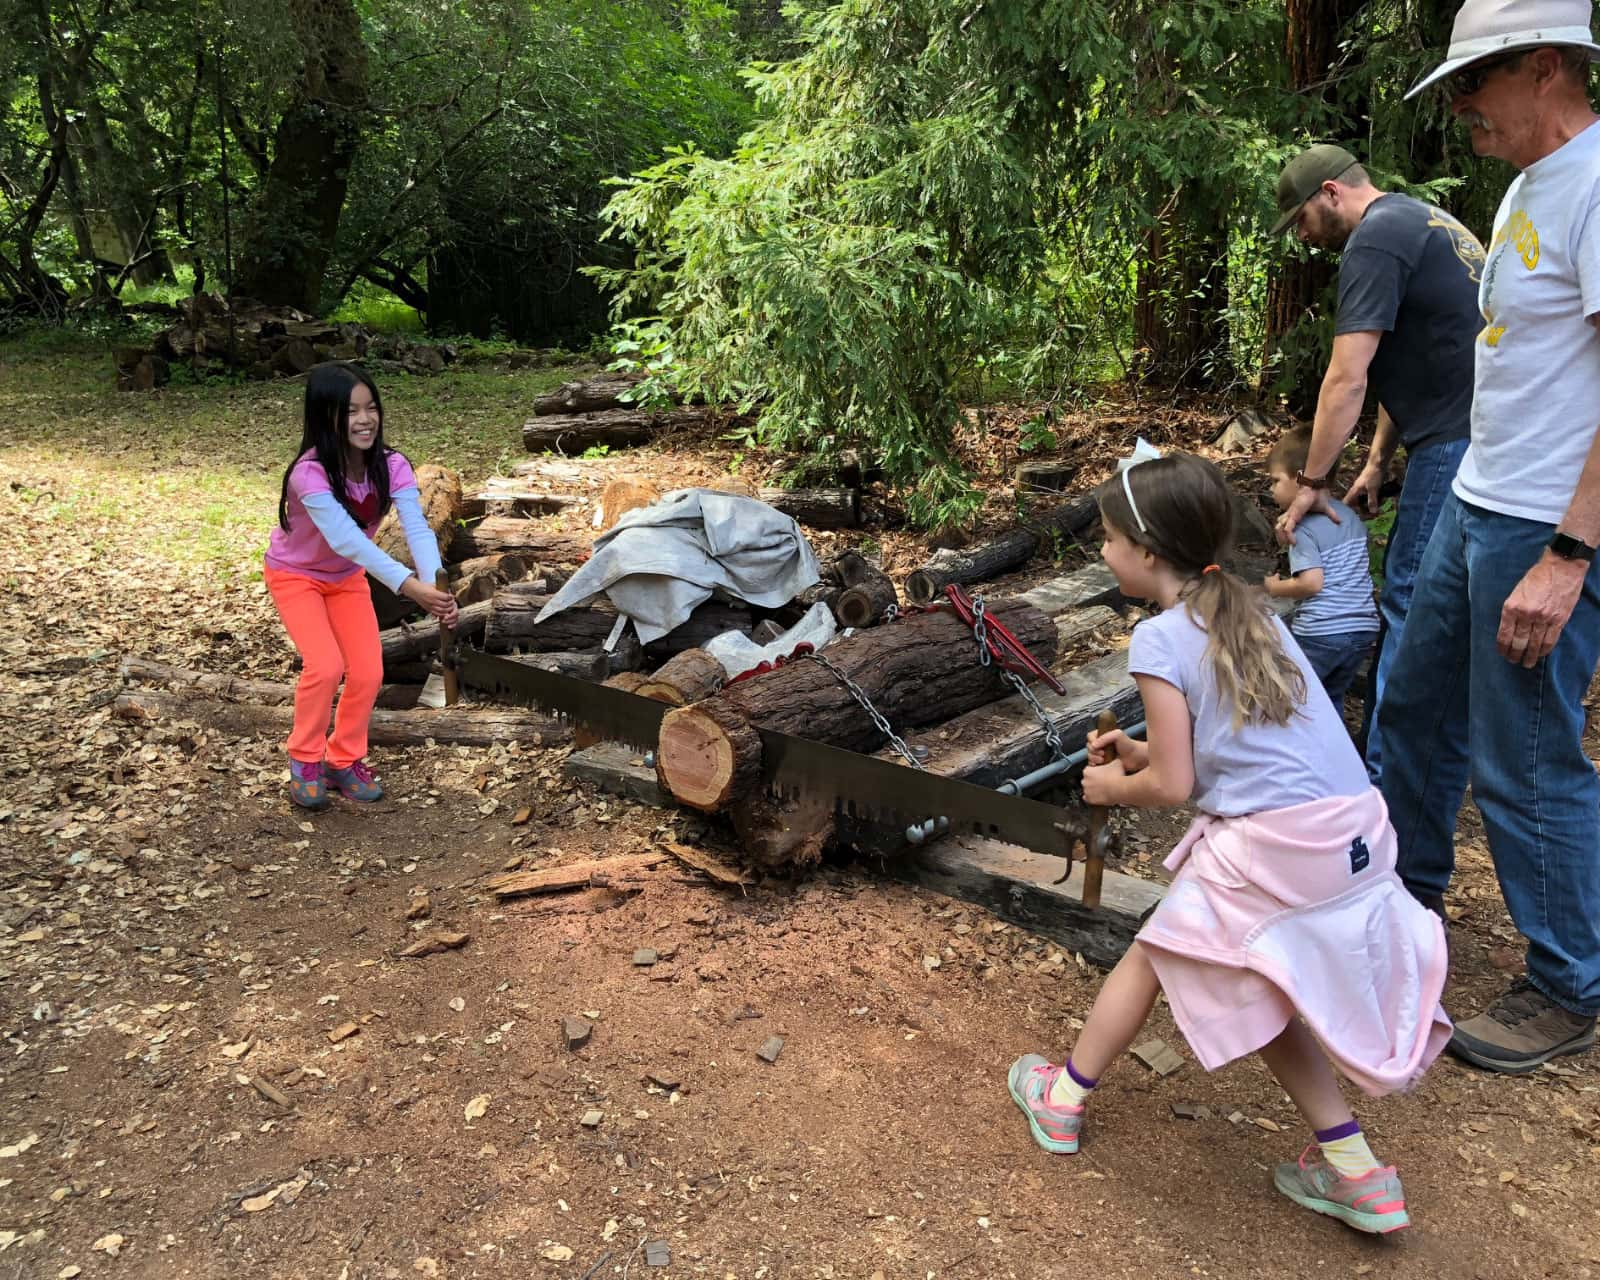 Two young girls saw a log with a two handled saw at Old Woodside Store Day